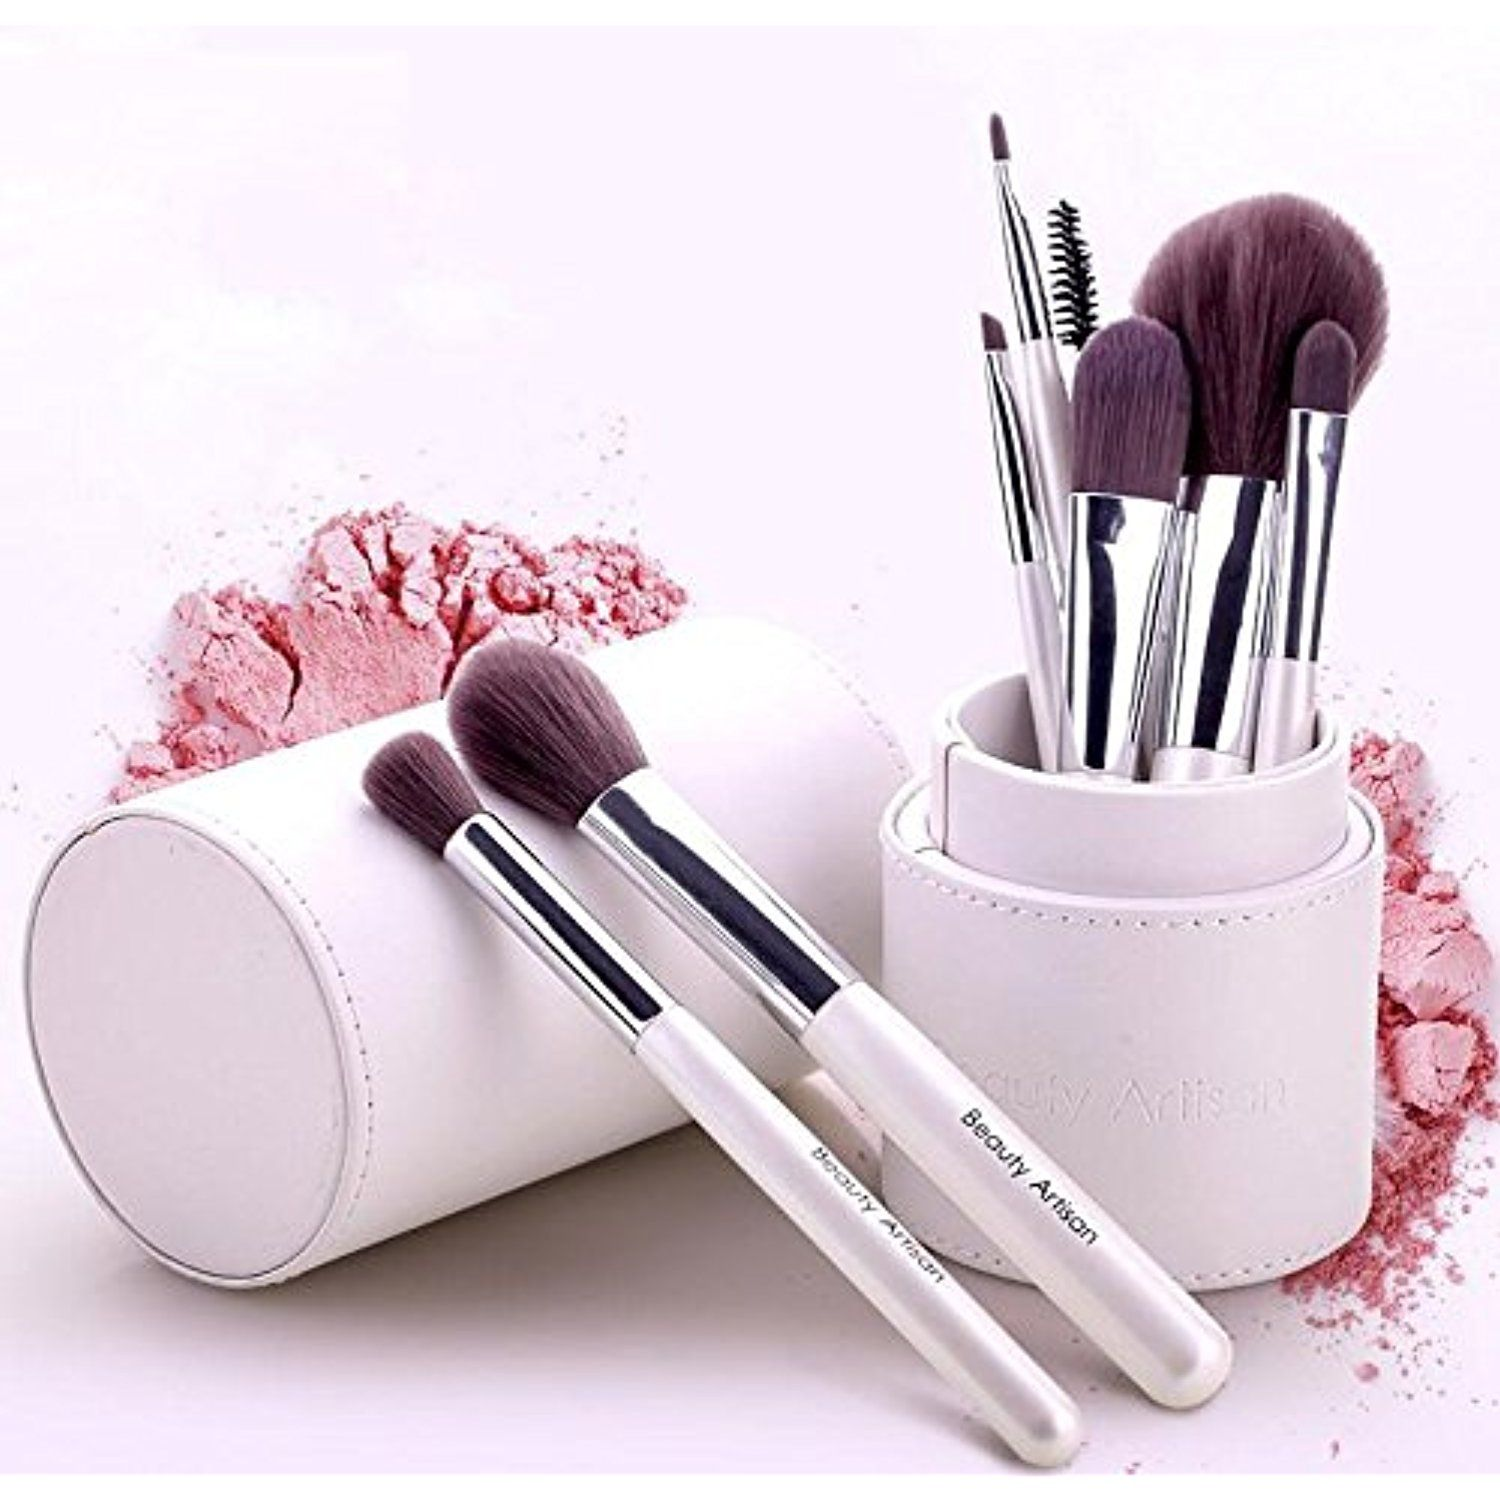 Colorful Soft Makeup Brushes Set Price 16.00 & FREE